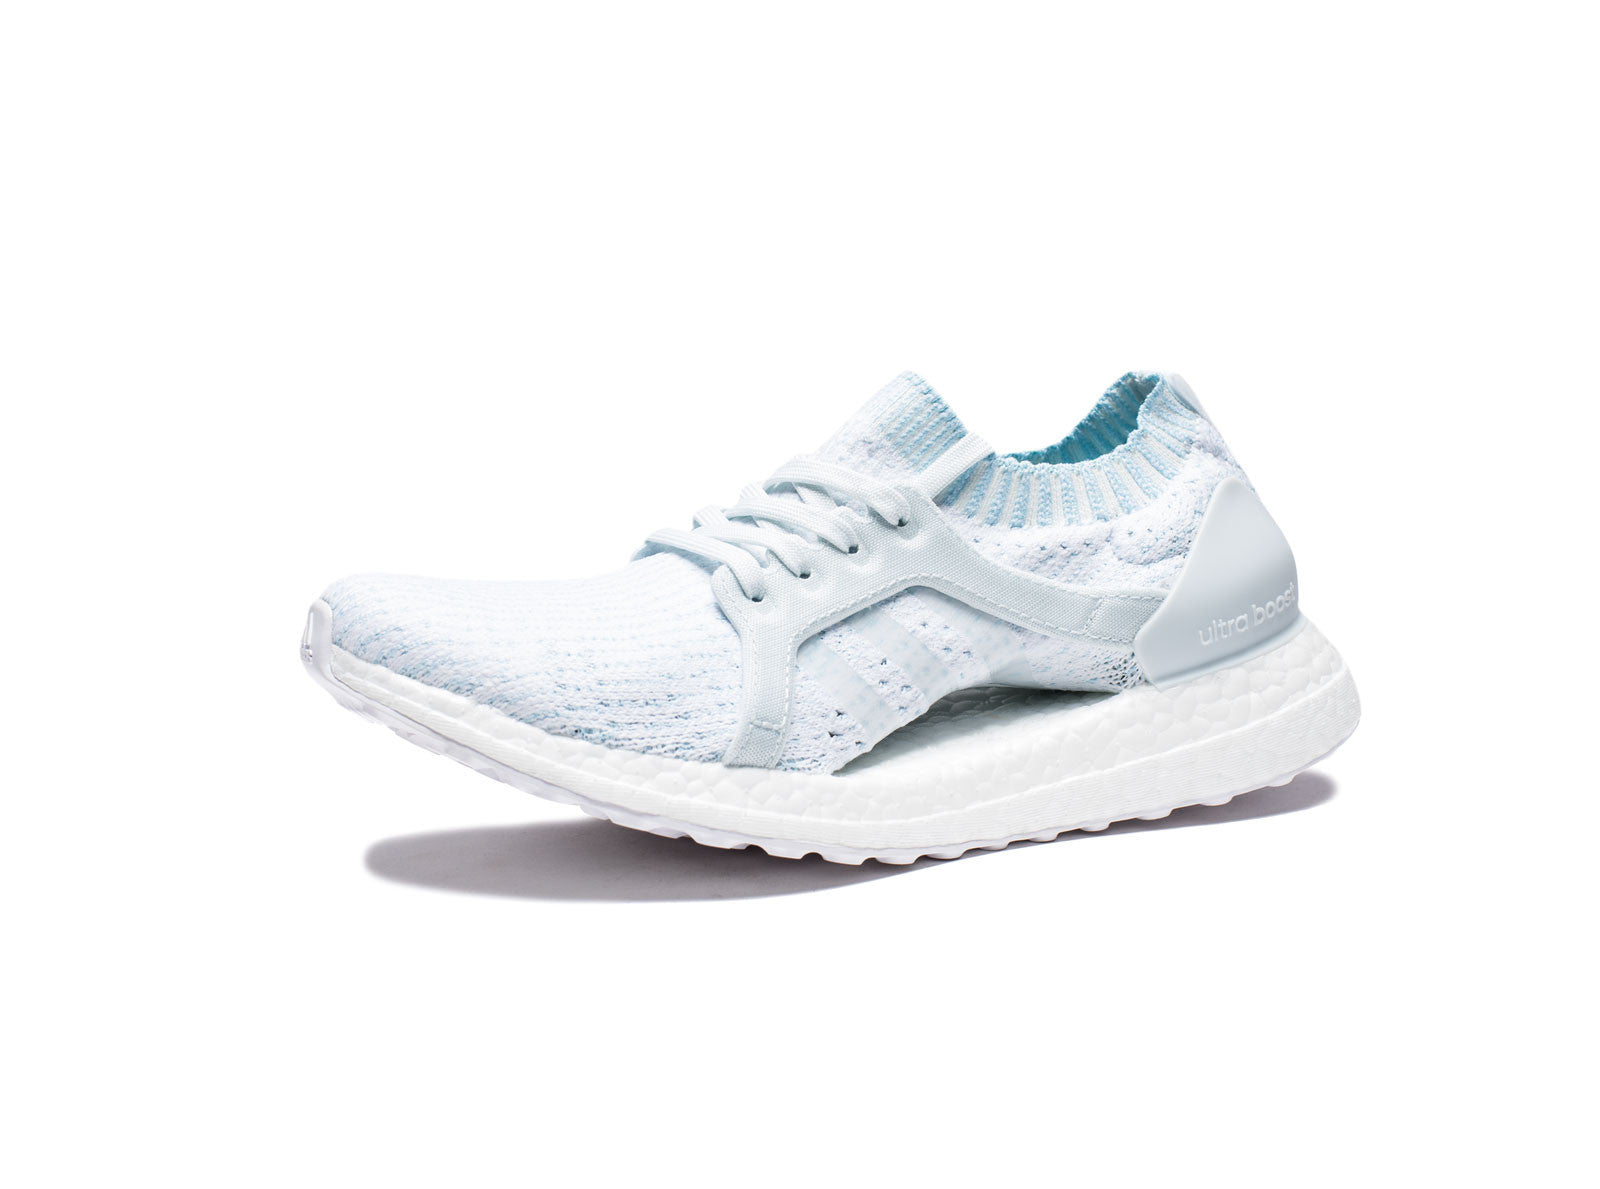 708df4ba348 footwear_womens_adidas_x-parley-ultraboost_BY2707.view_1.jpg?v=1499465277